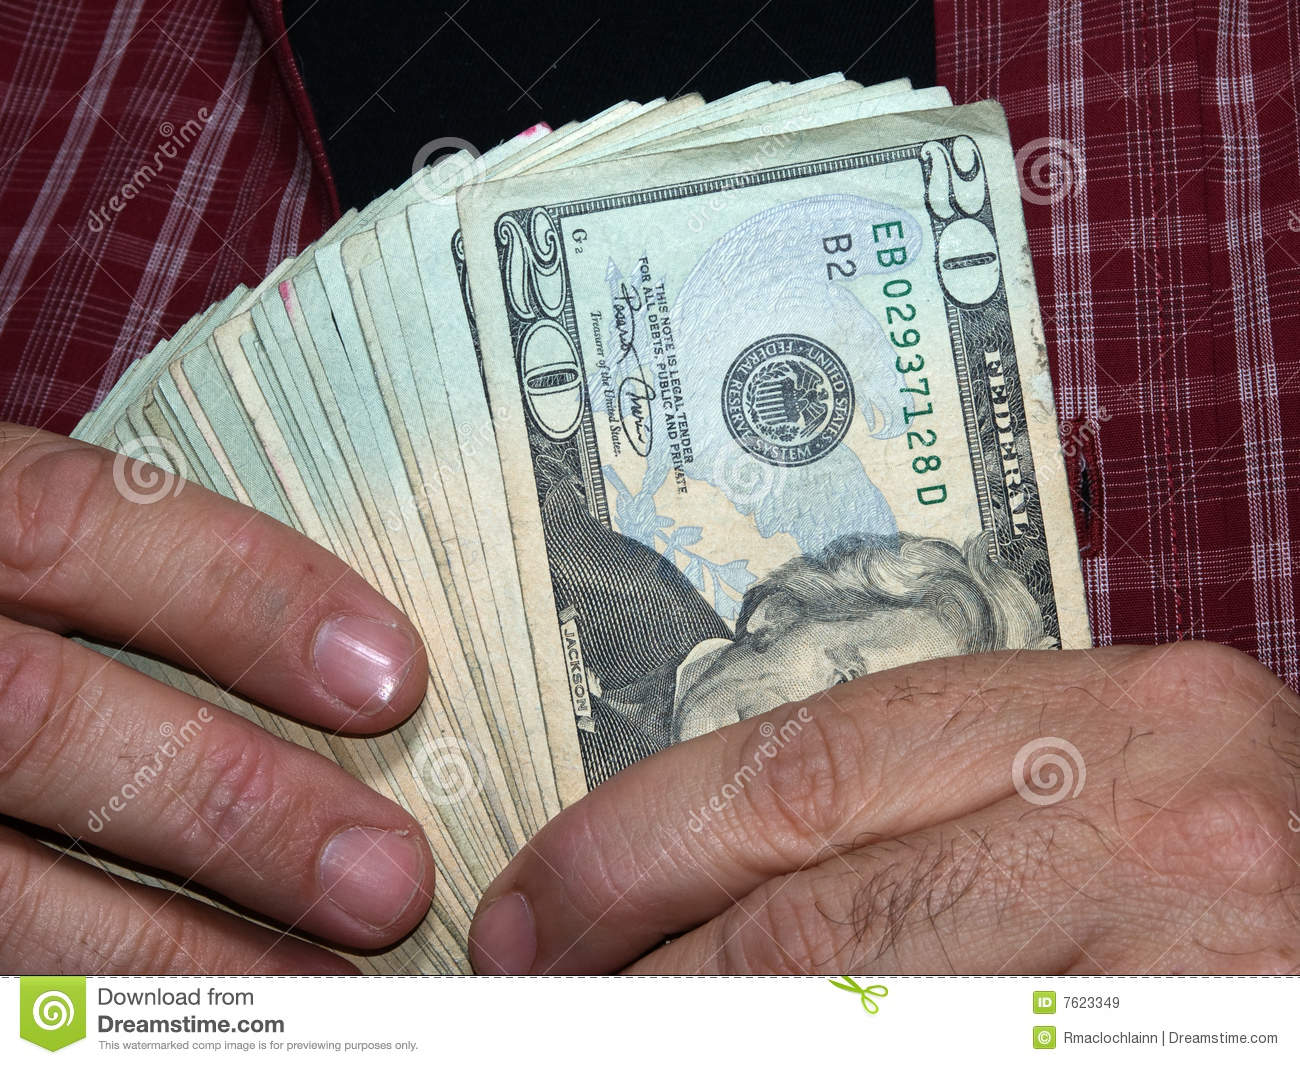 Man Holding One Thousand Dollars In 20 Dollar Bills Clipping Path Isolates The Hands And Money If Desired